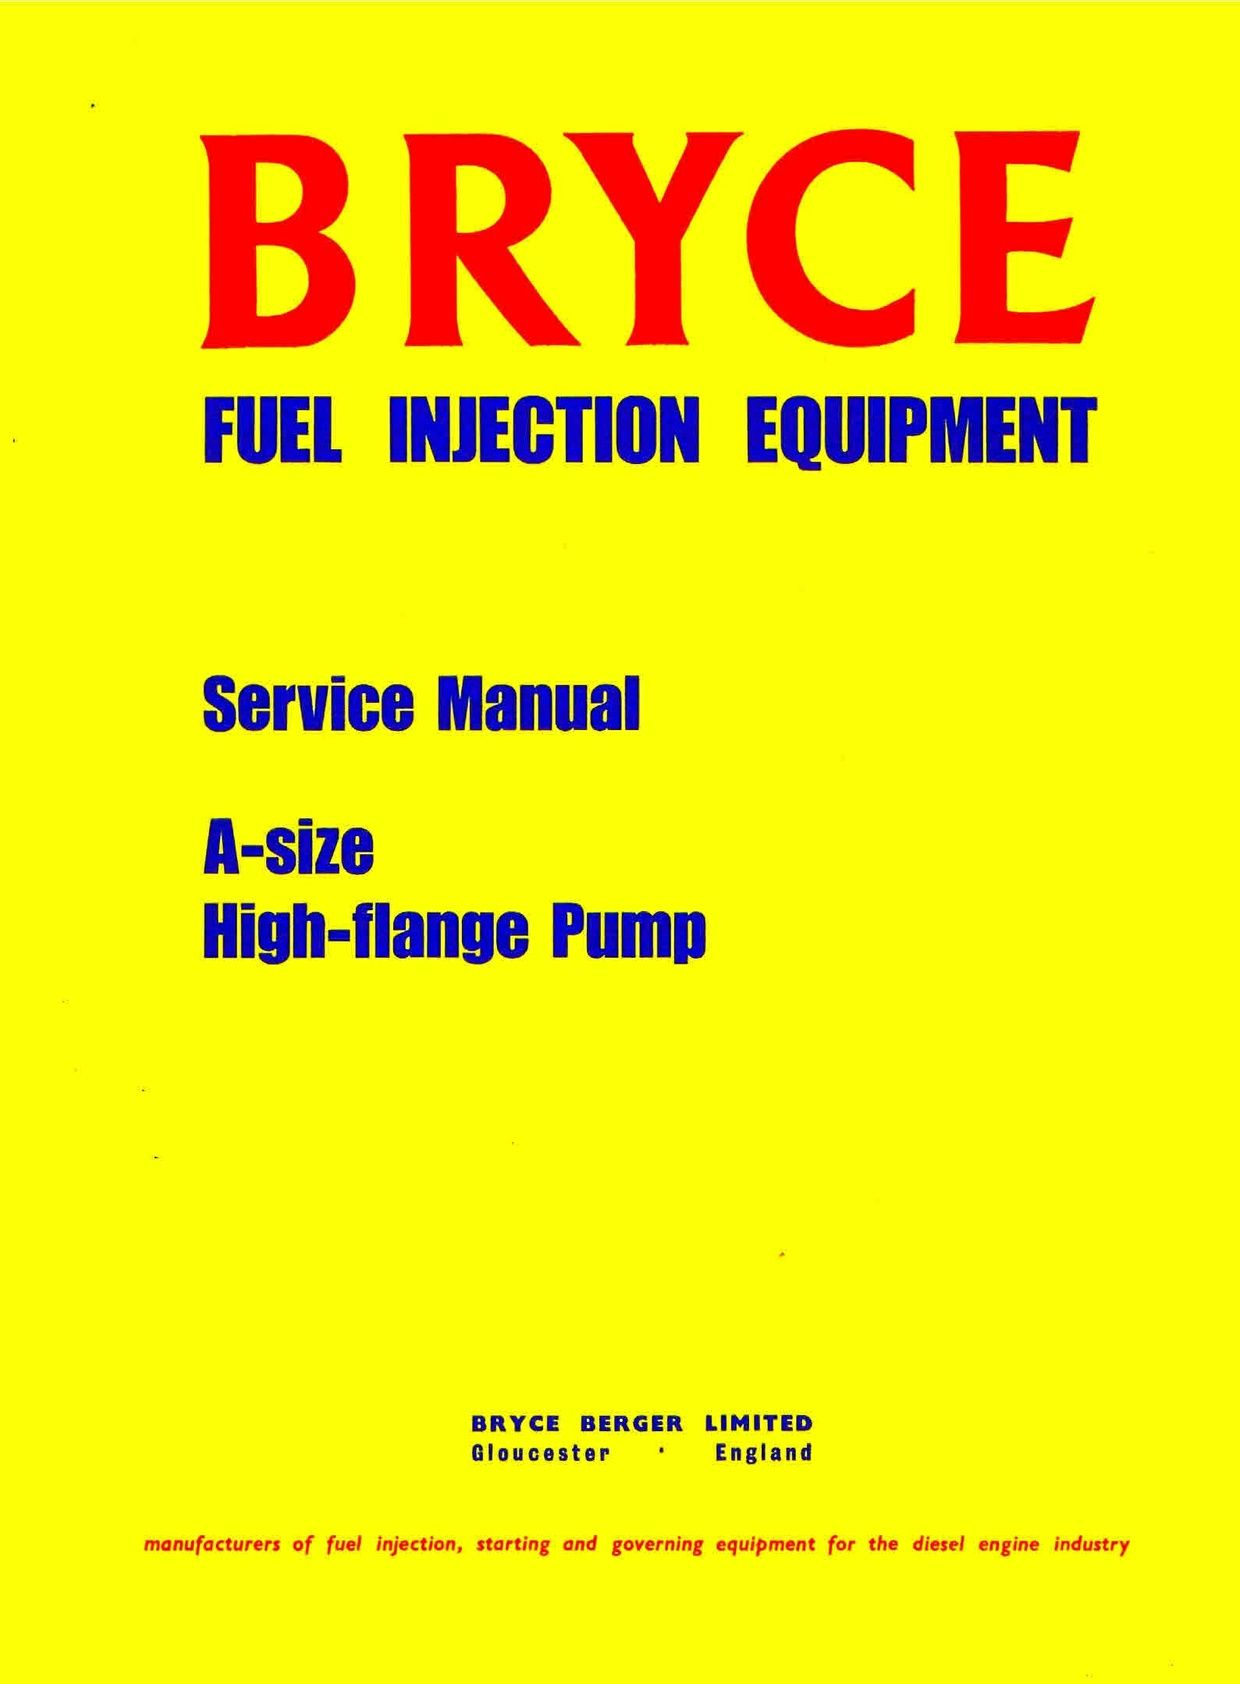 Pin Lucas Cav Injection Pump Diagram On Pinterest Wiring Diagrams Diesel Injector Bryce Fuel Pumps Manuals For Mechanics Vintage Auto Manual Covers Rh Com Perkins Ledger